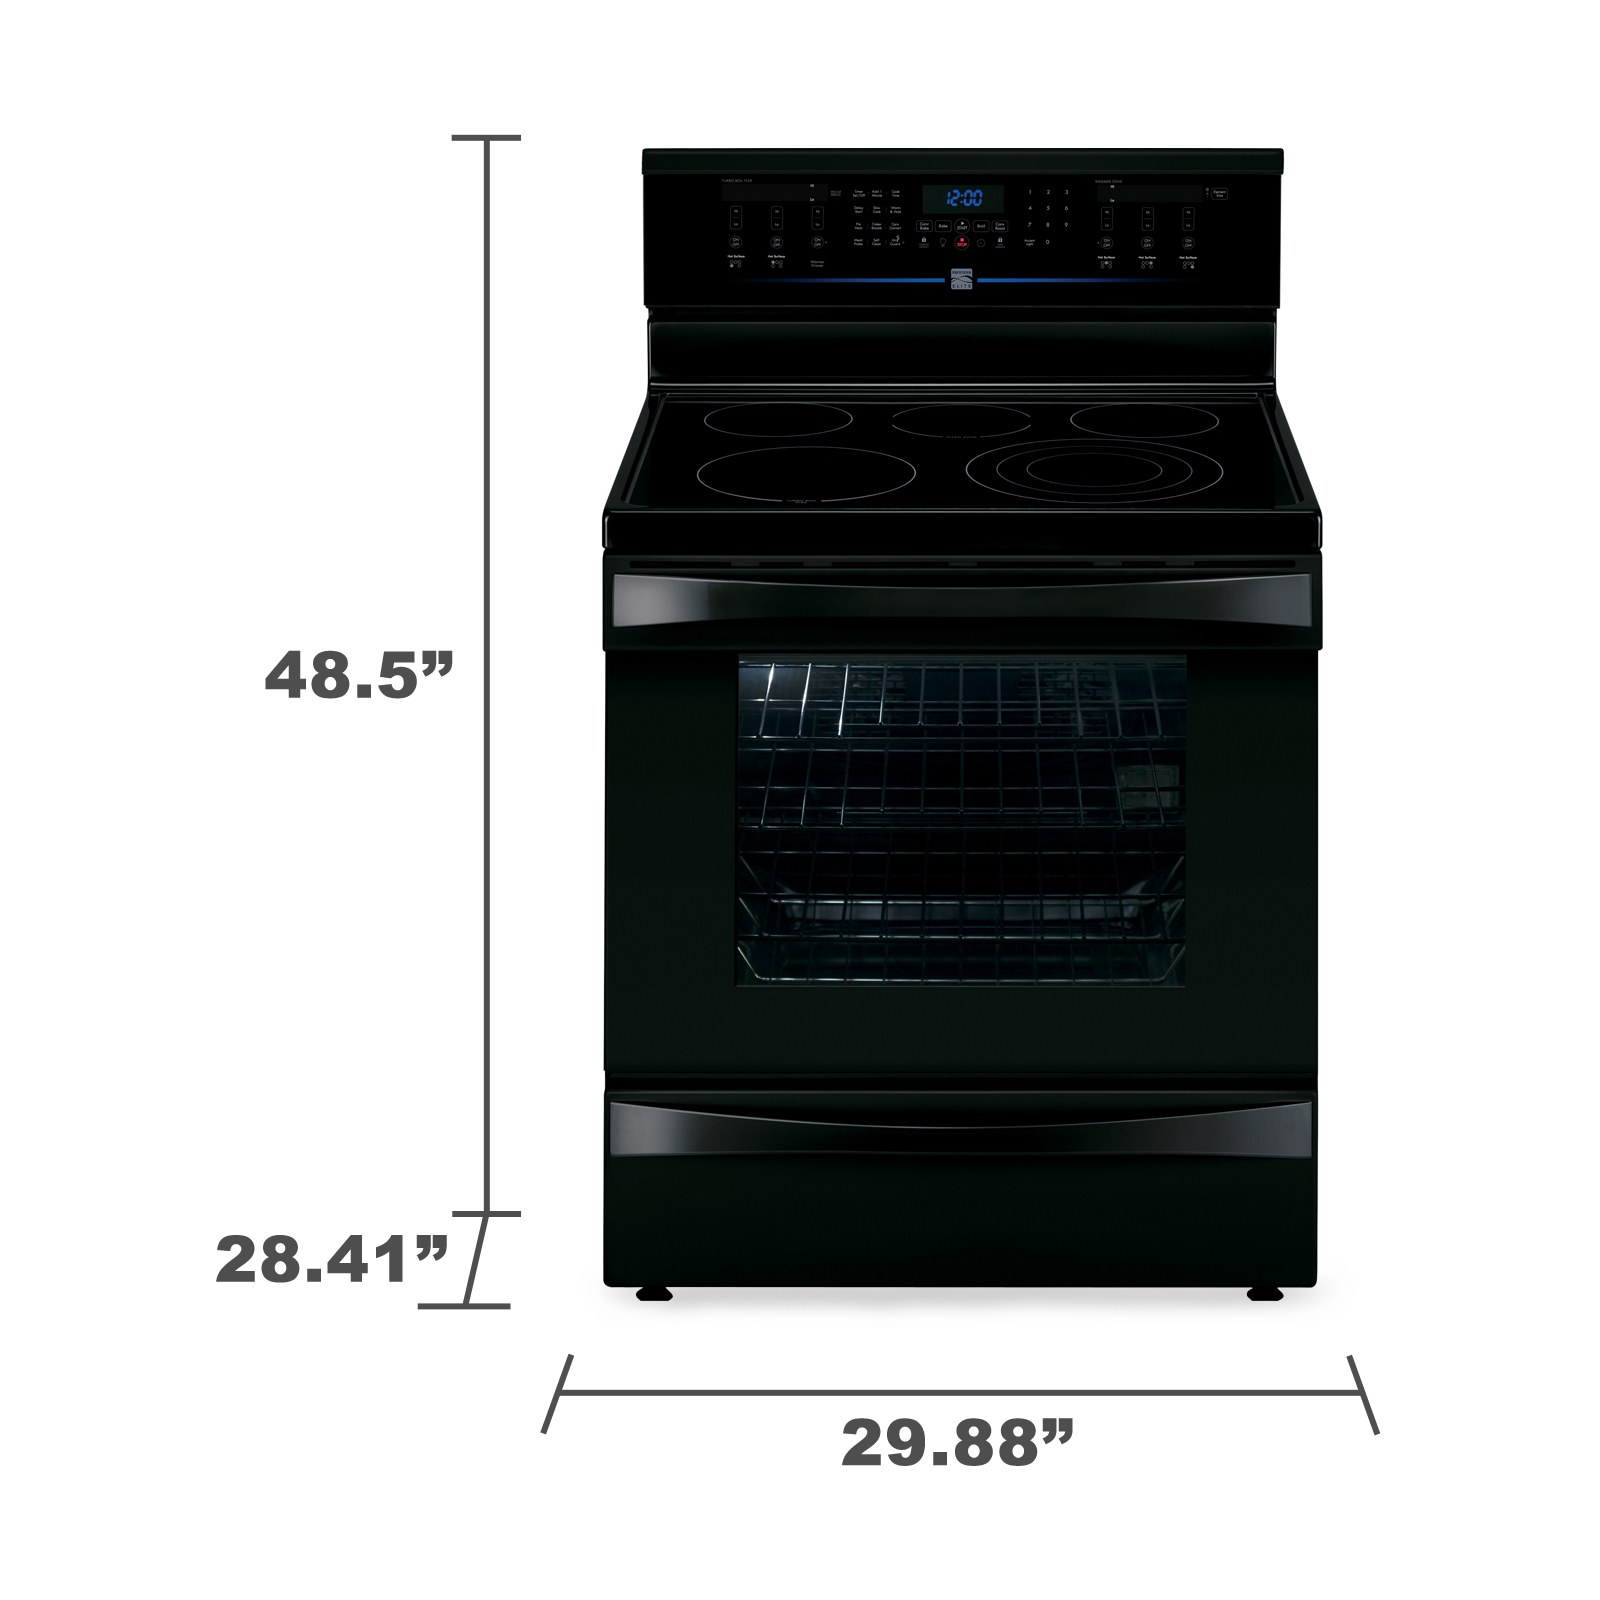 Kenmore Elite 6.1 cu. ft. Electric Range w/ Dual True Convection -  Black